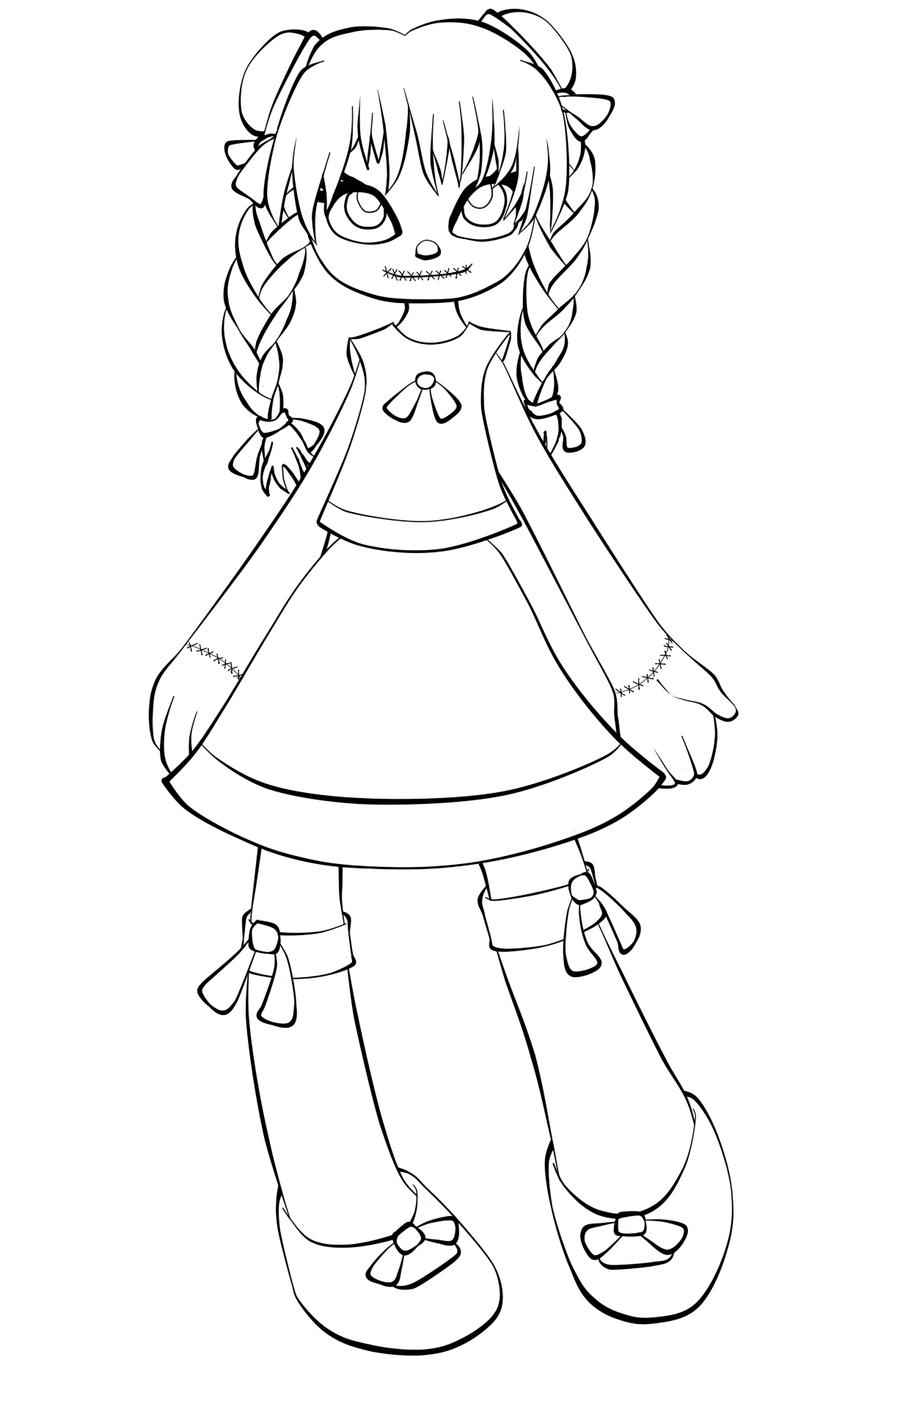 Childrens coloring sheet of a rag doll - Rag Doll Design Lines By Tsukiko Moonchild On Deviantart Strawberry Shortcake Doll Coloring Pages